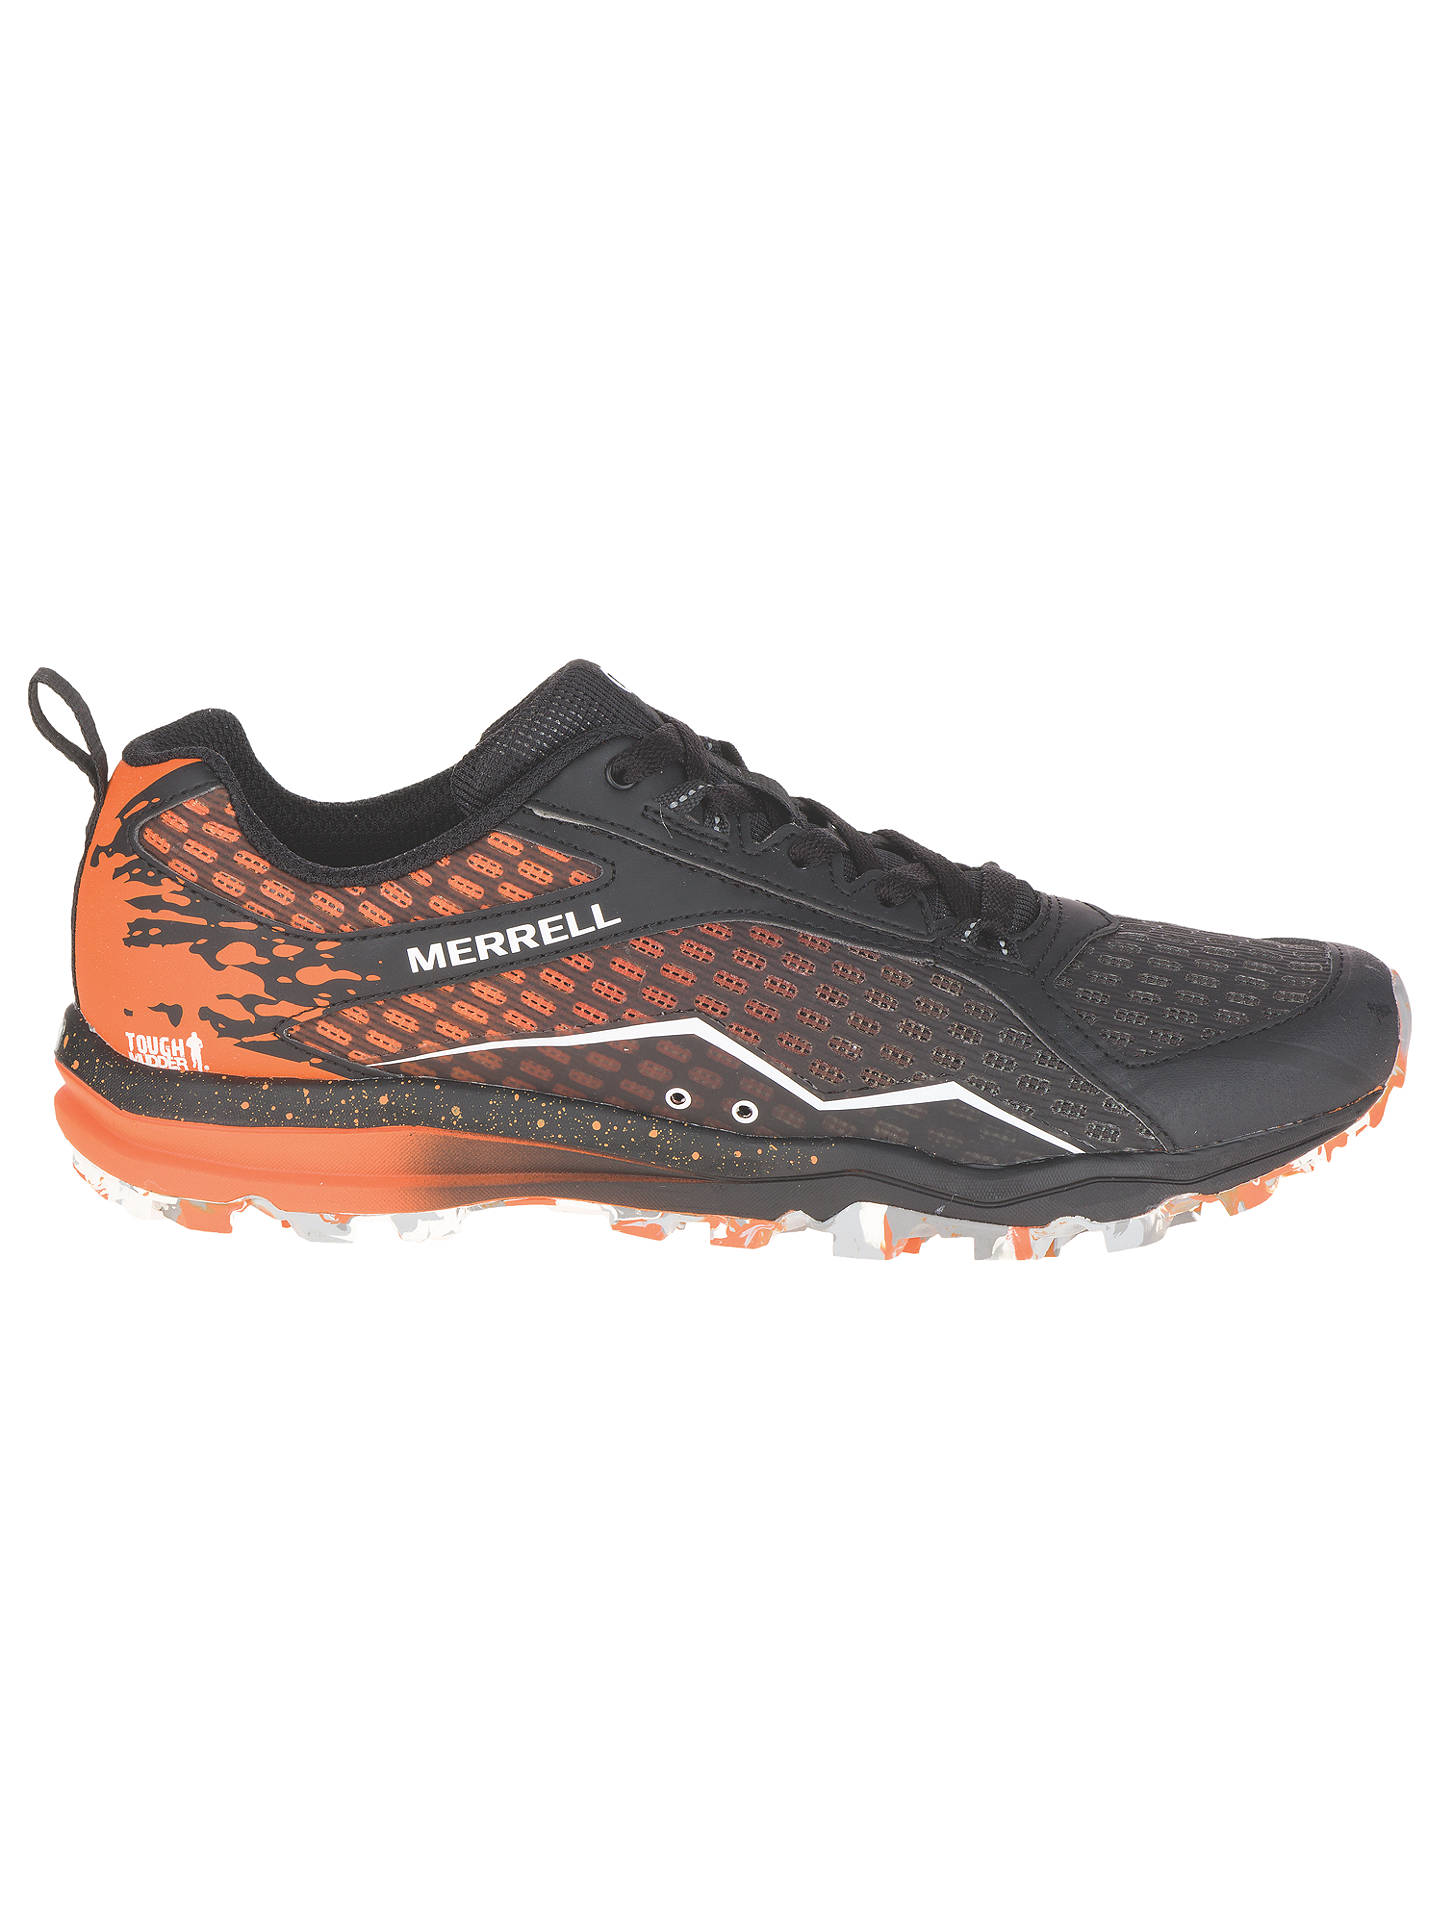 3ae8c08489 Buy Merrell All Out Crush Tough Mudder Men's Trail Running Shoes,  Black/Orange, ...